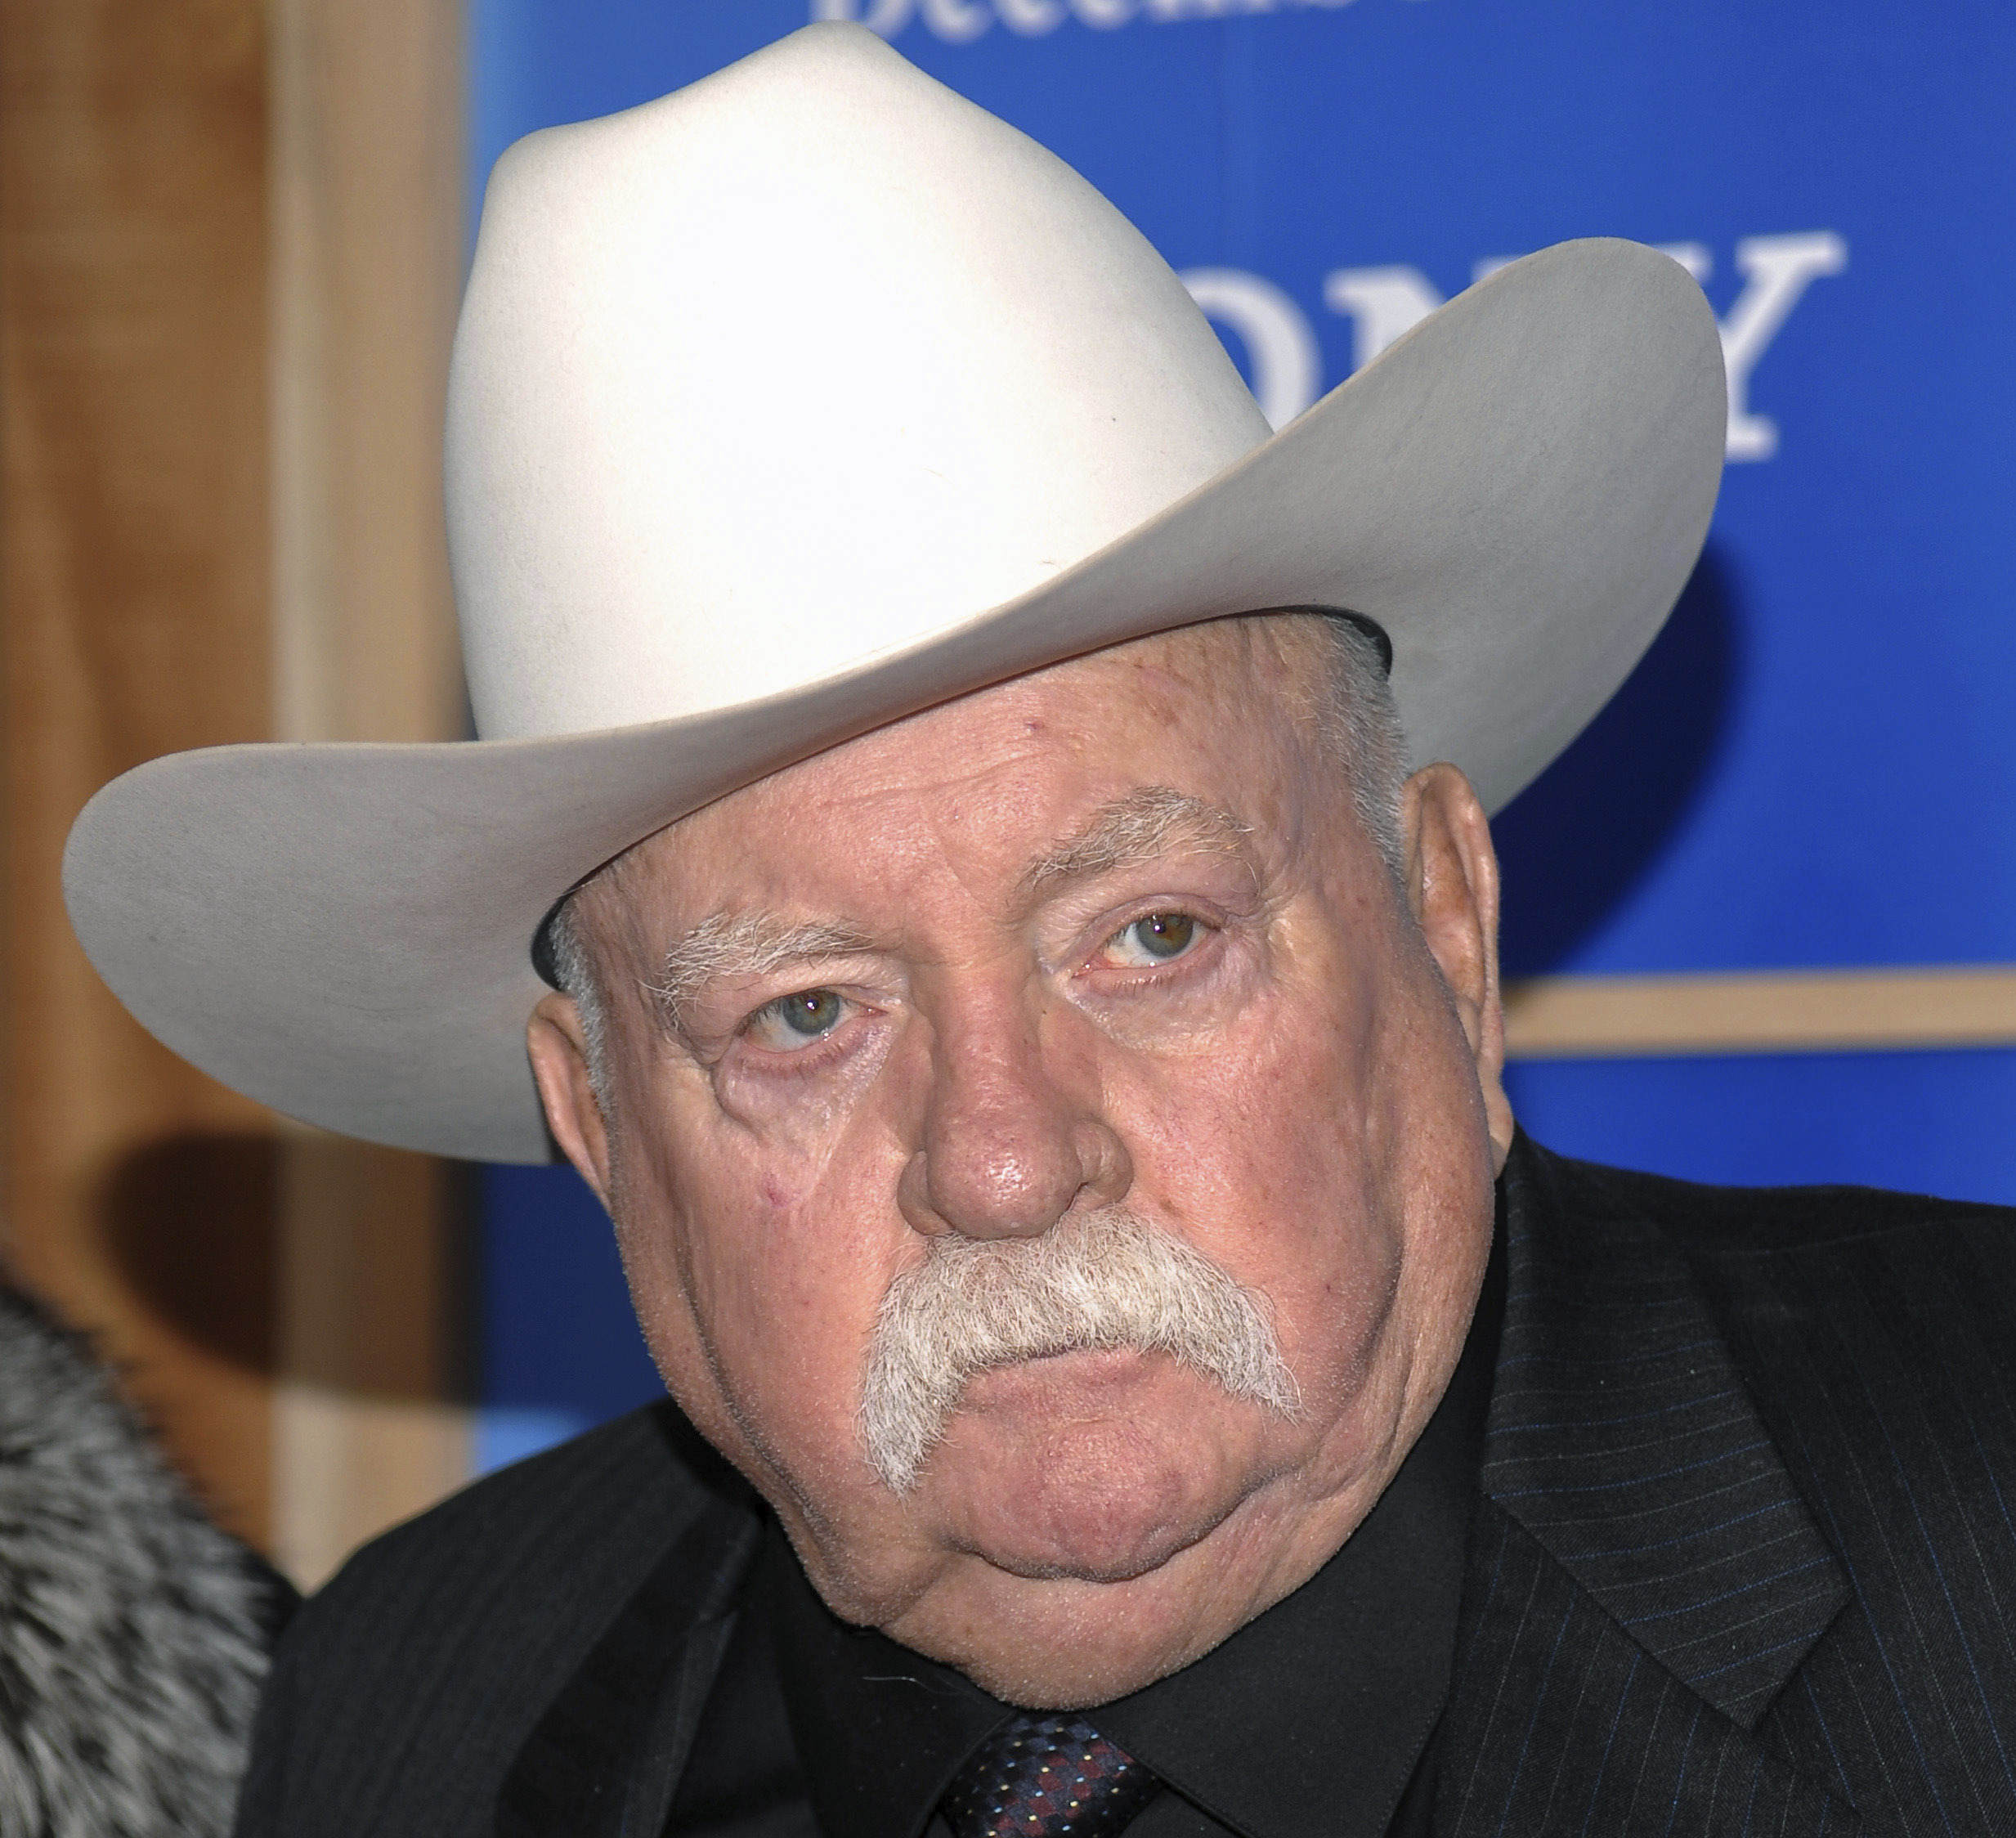 Wilford Brimley, Cocoon and Natural actor, dies at 85